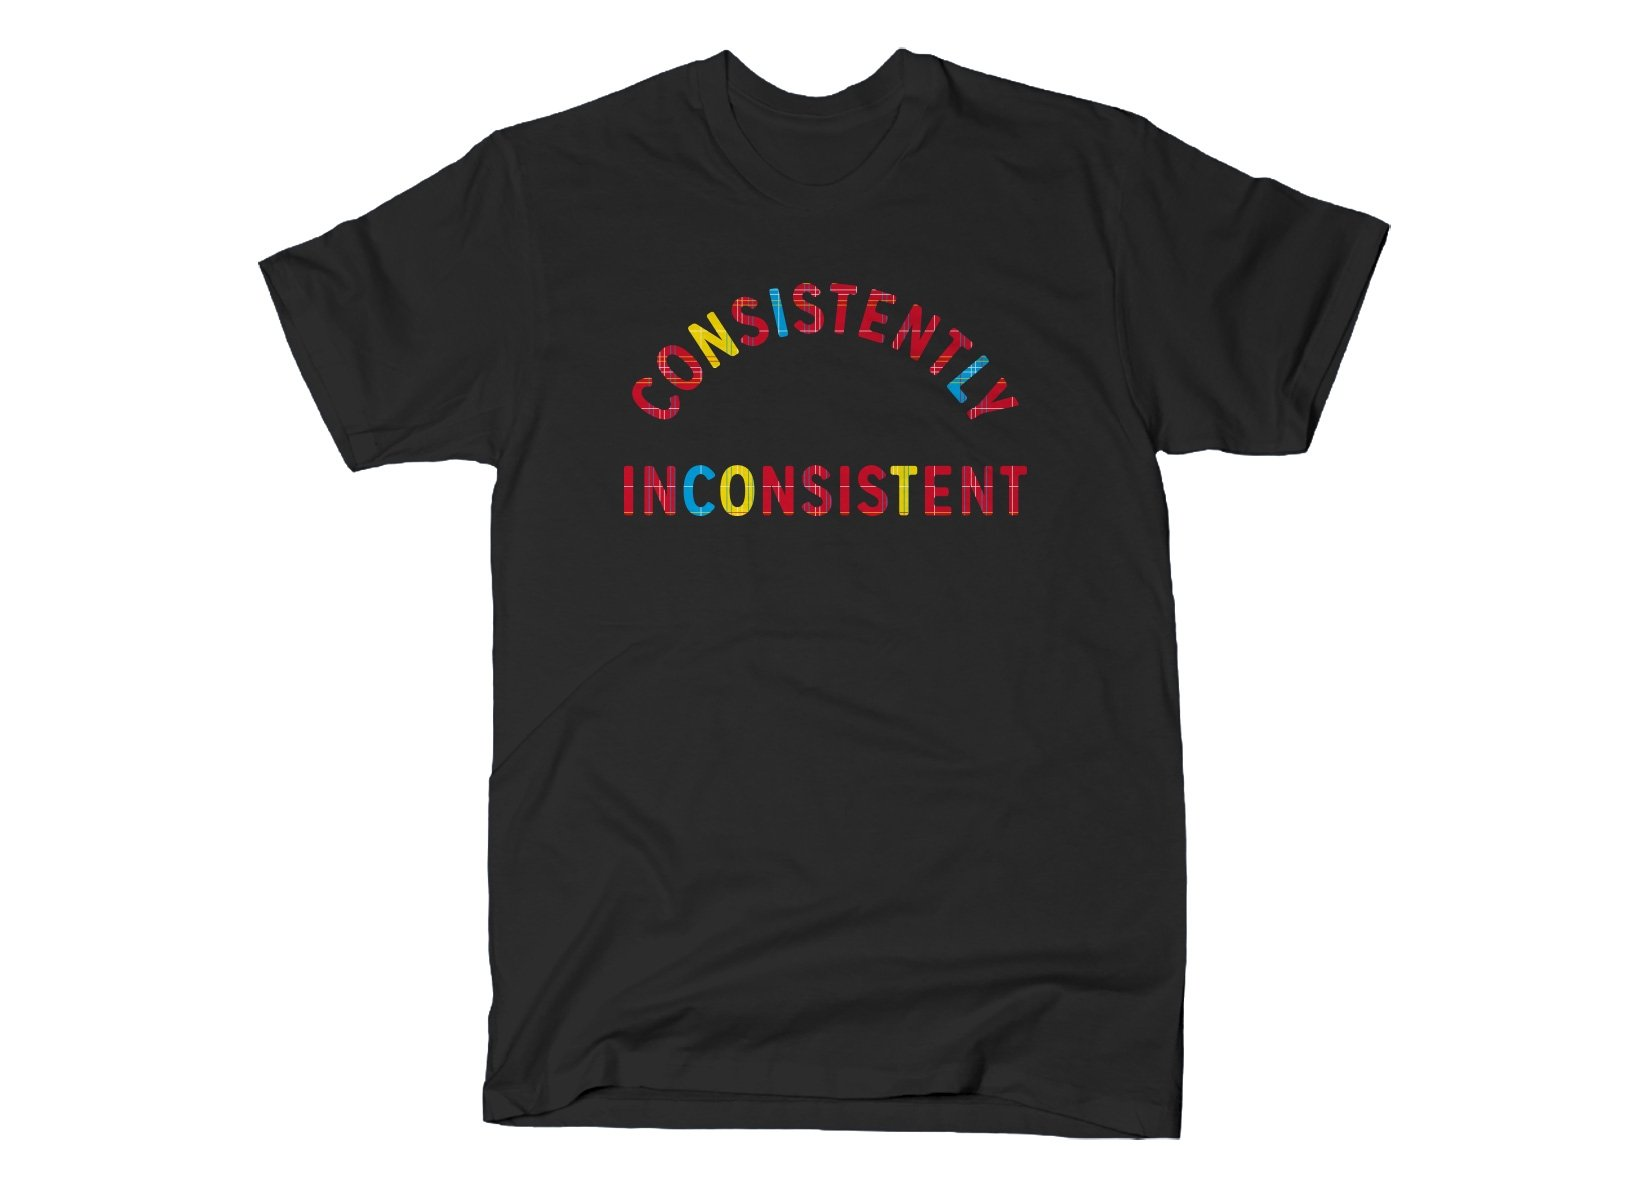 Consistently Inconsistent on Mens T-Shirt